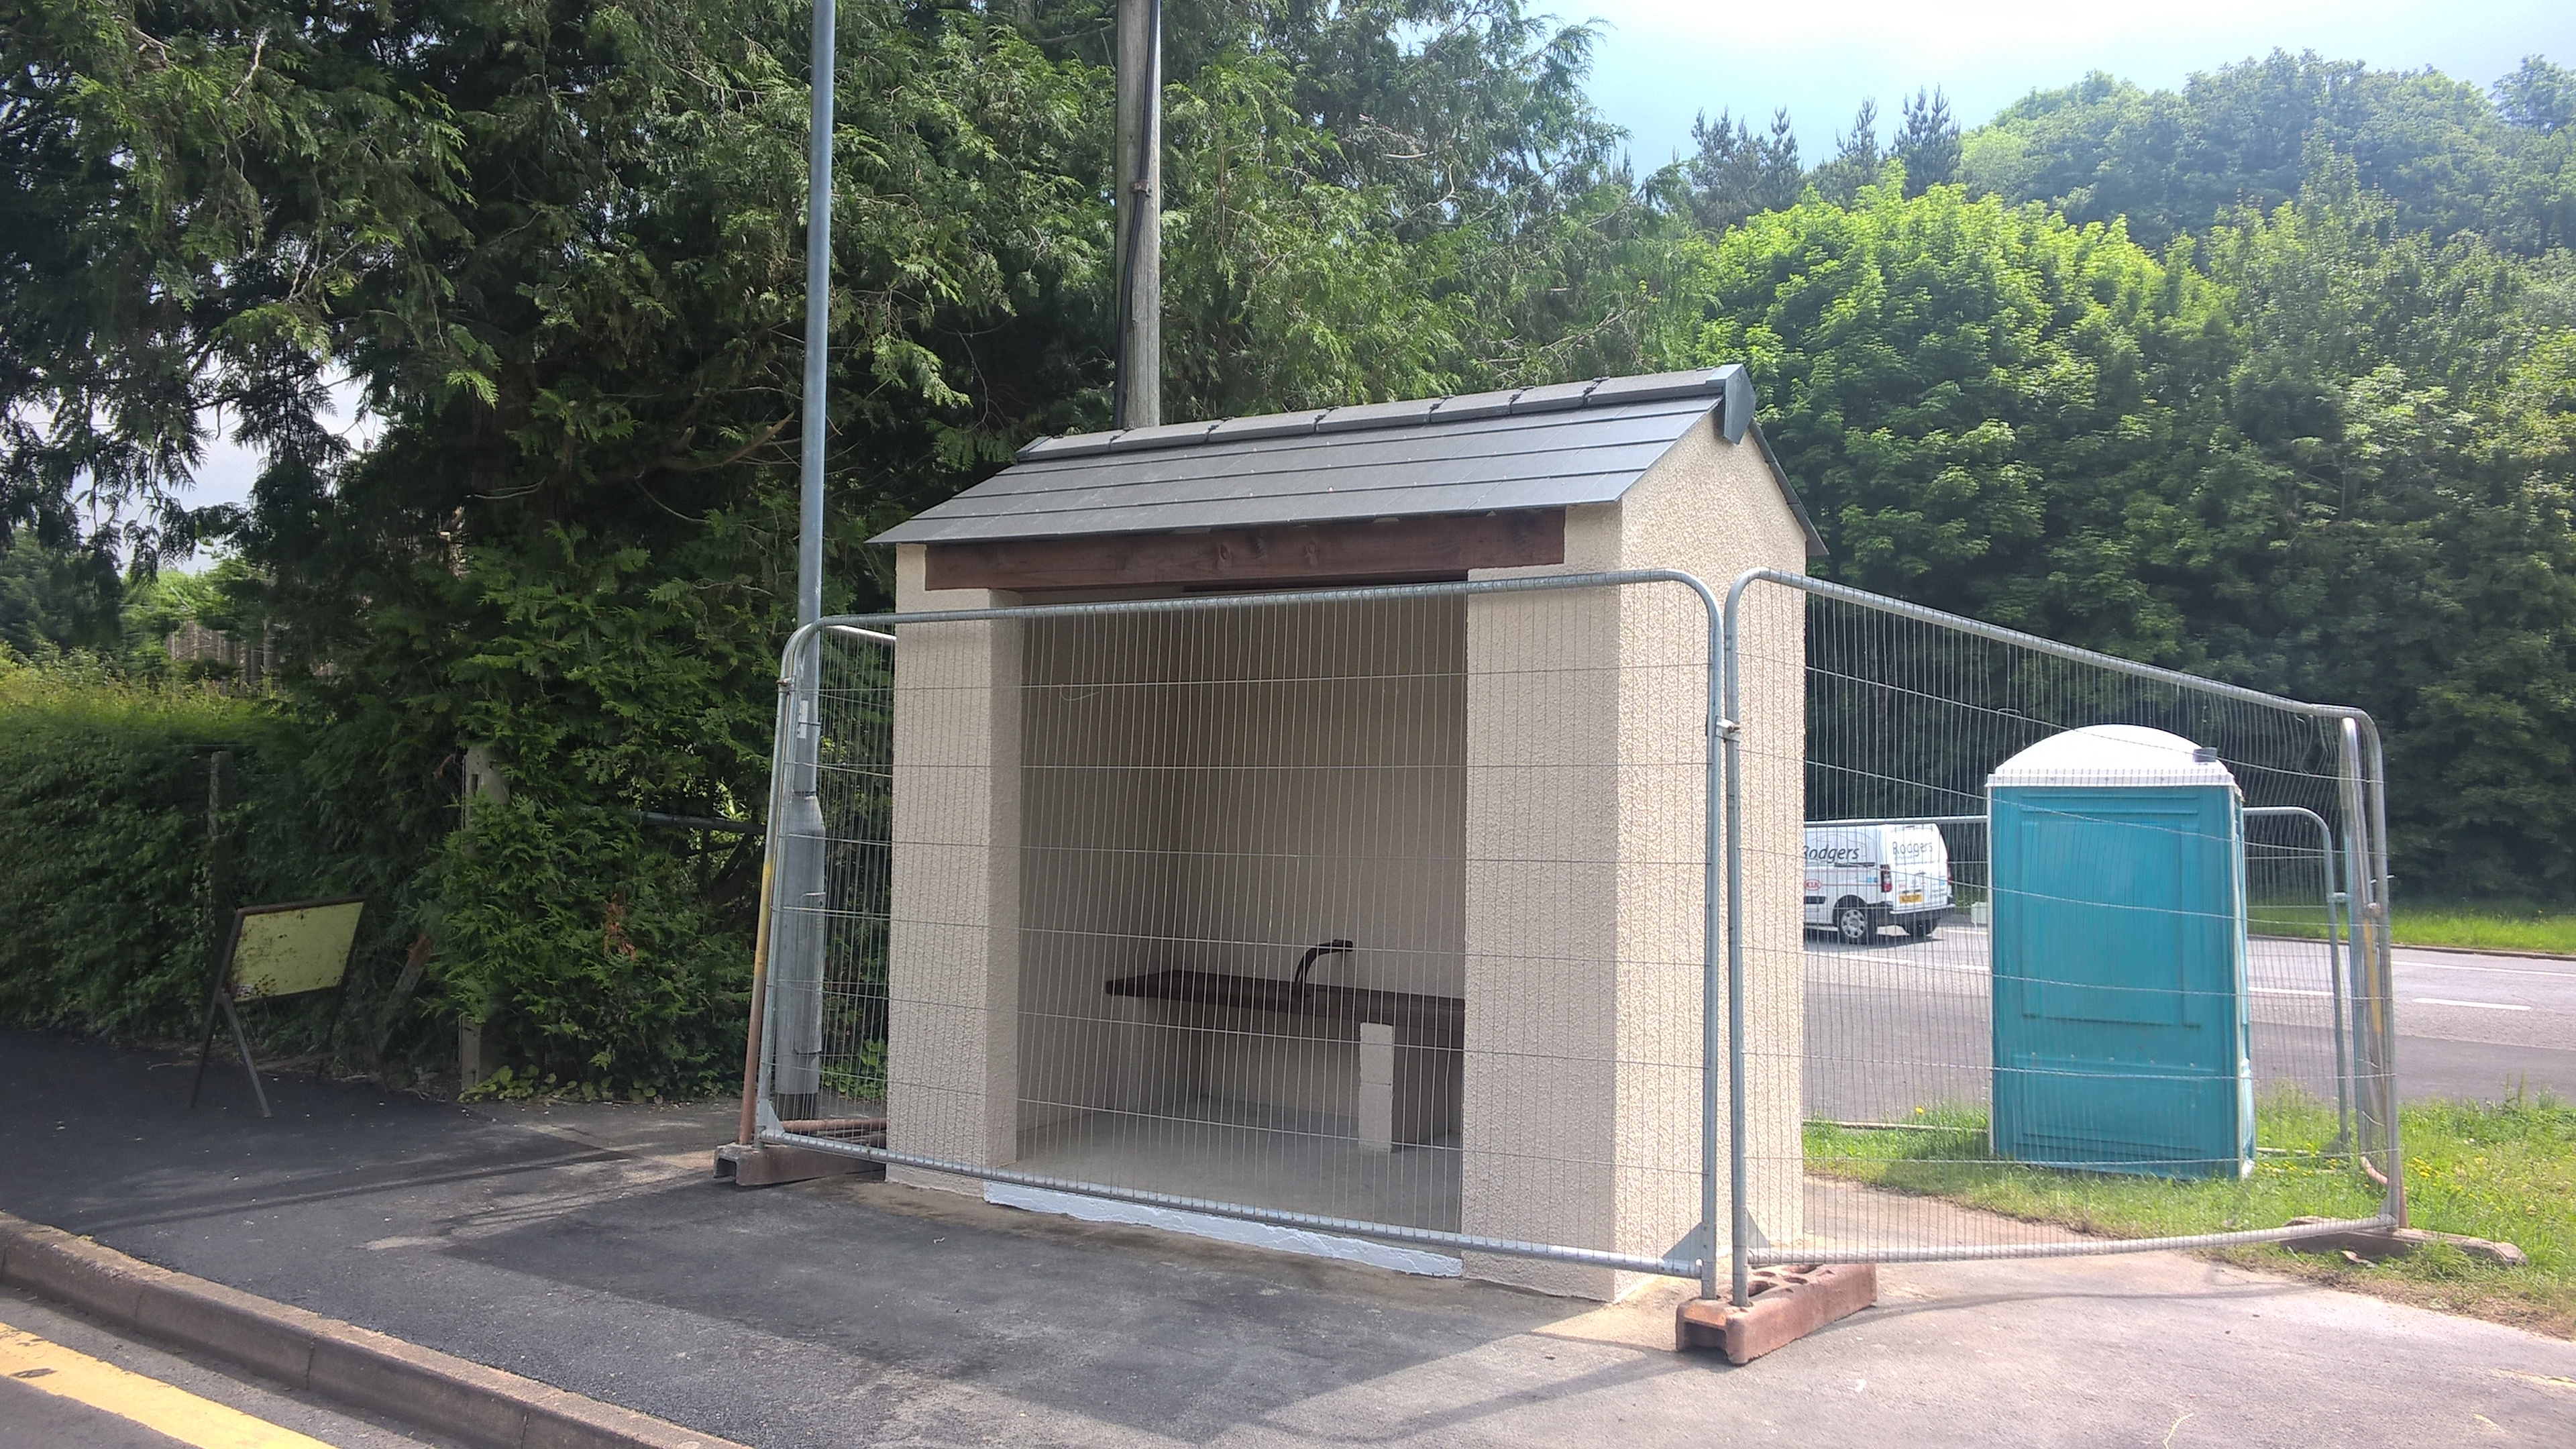 Complete rebuild of Bus Shelter after being hit by a lorry